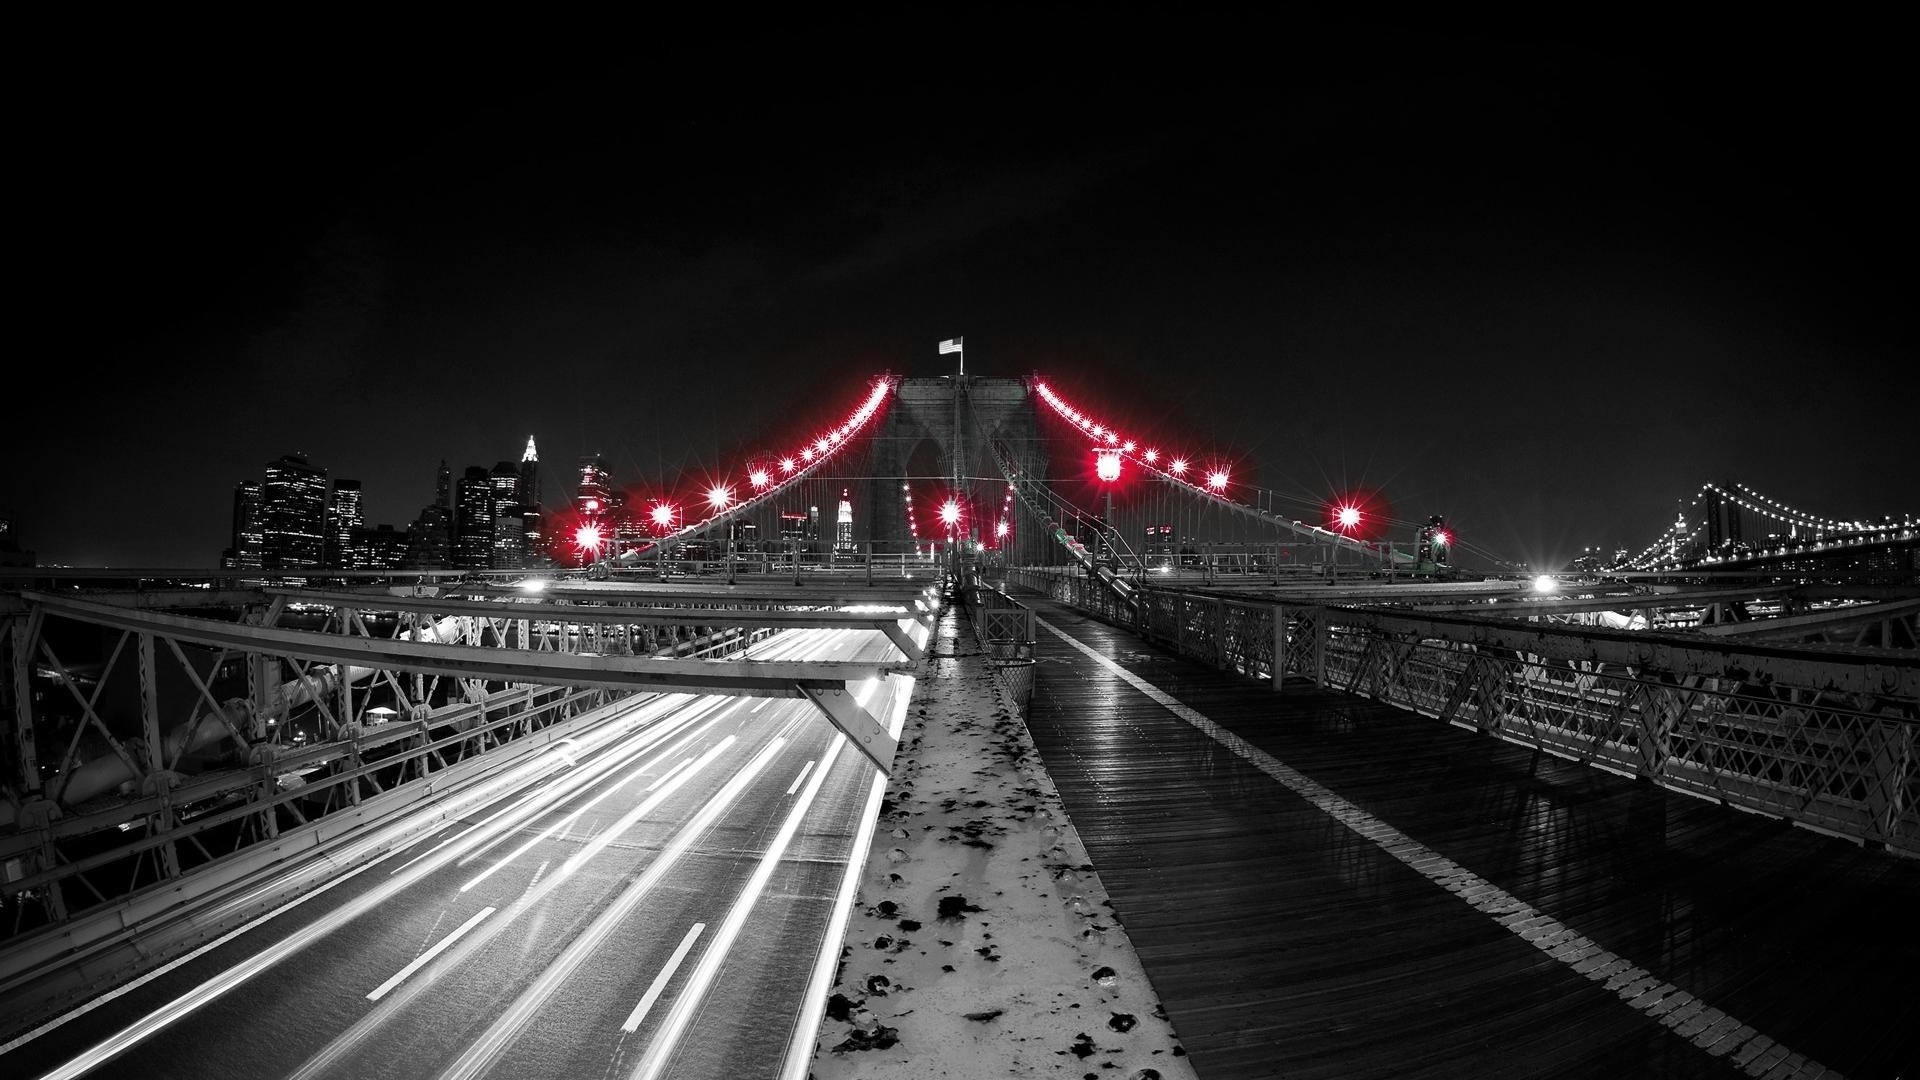 Red Black and White | Black Red Light Bridge White Up Net Wallpaper with  .